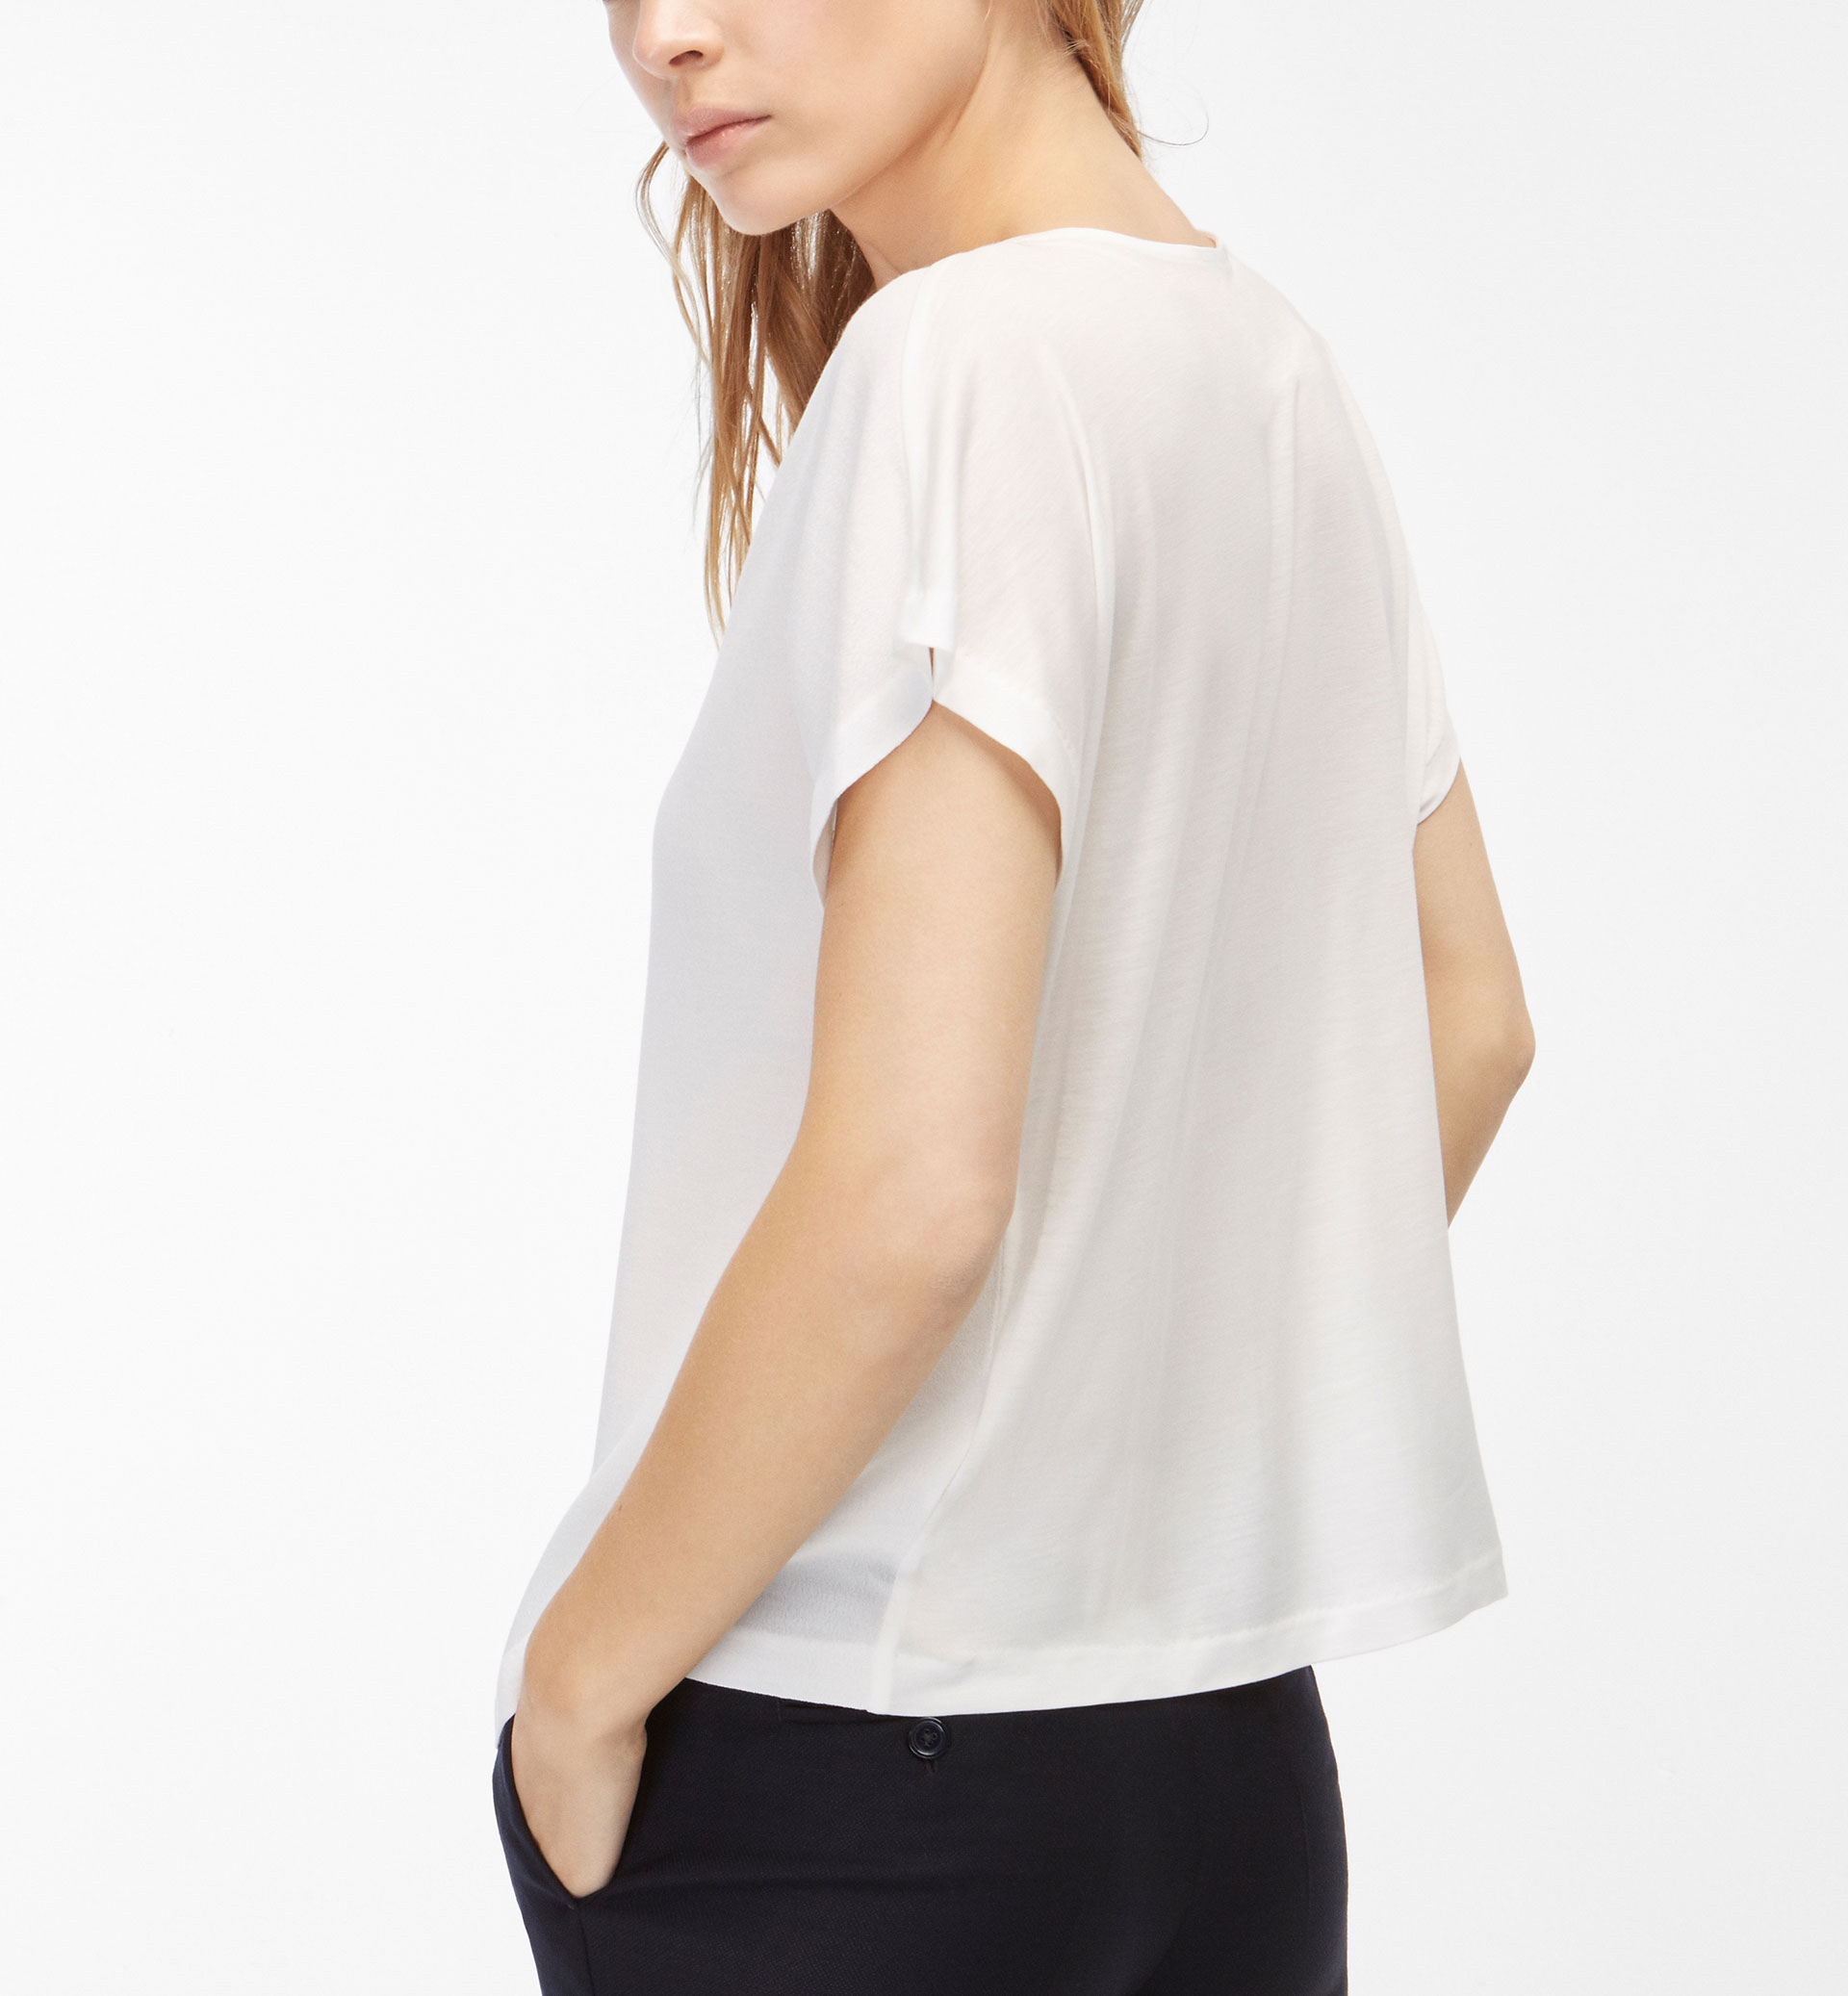 T-SHIRT WITH FRONT PLEAT